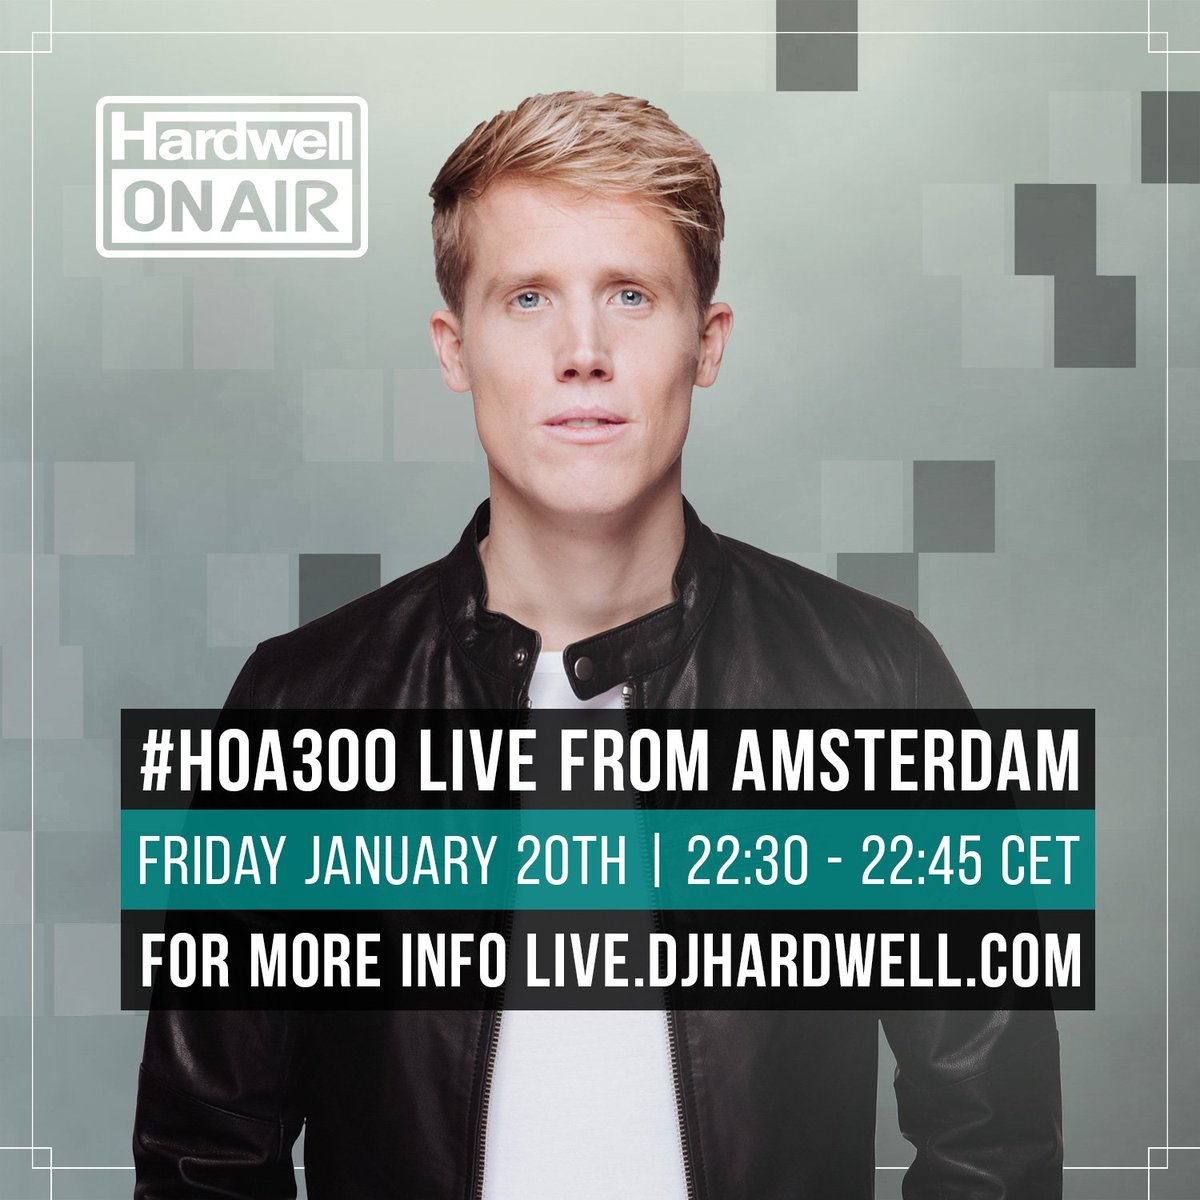 I'm happy to announce I'll be supporting @Hardwell today in #HOA300! T...